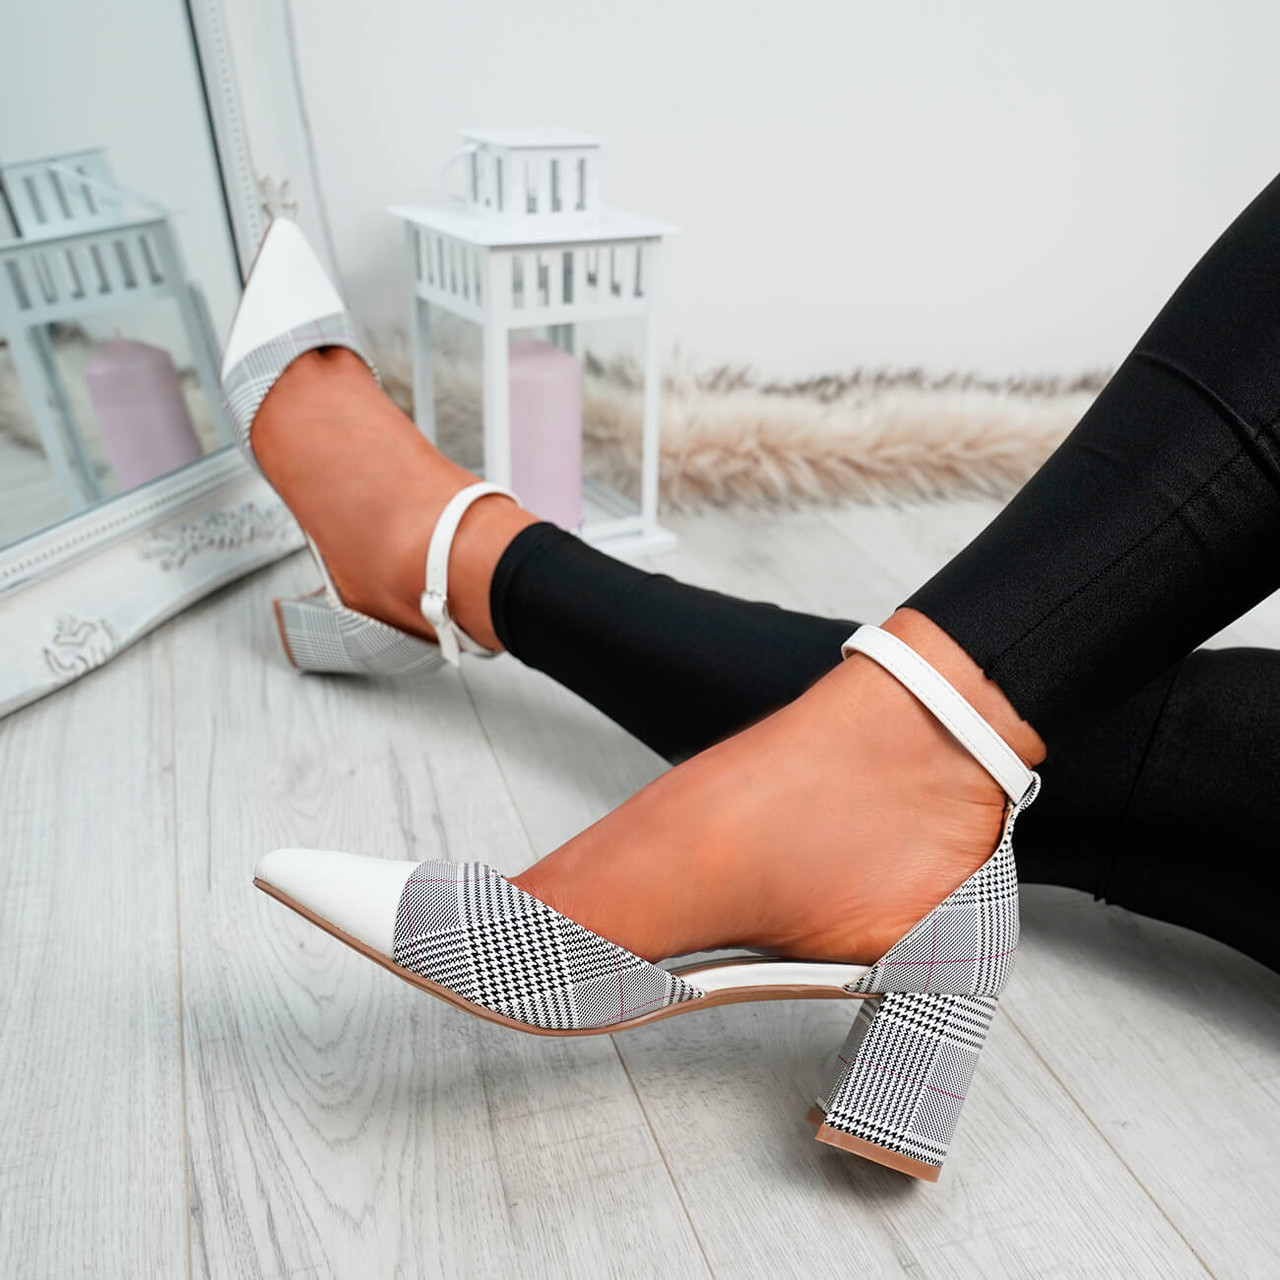 0a3c6a8363 Womens Ladies Striped Pumps Ankle Strap High Block Heels Casual Party Shoes